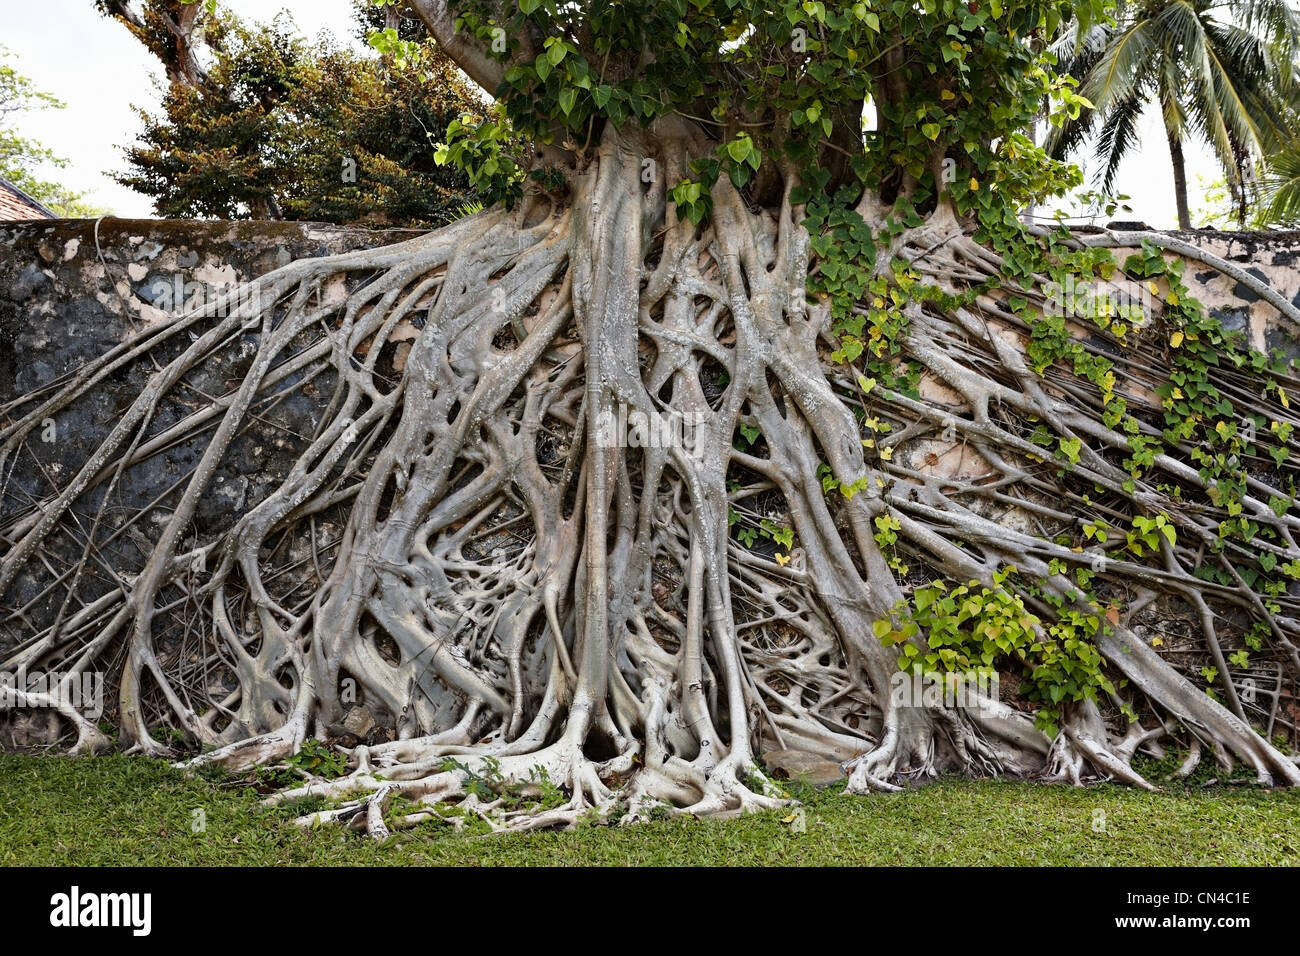 Strangler fig tree on wall in Con Son, Con Dao Island, Vietnam Stock Photo